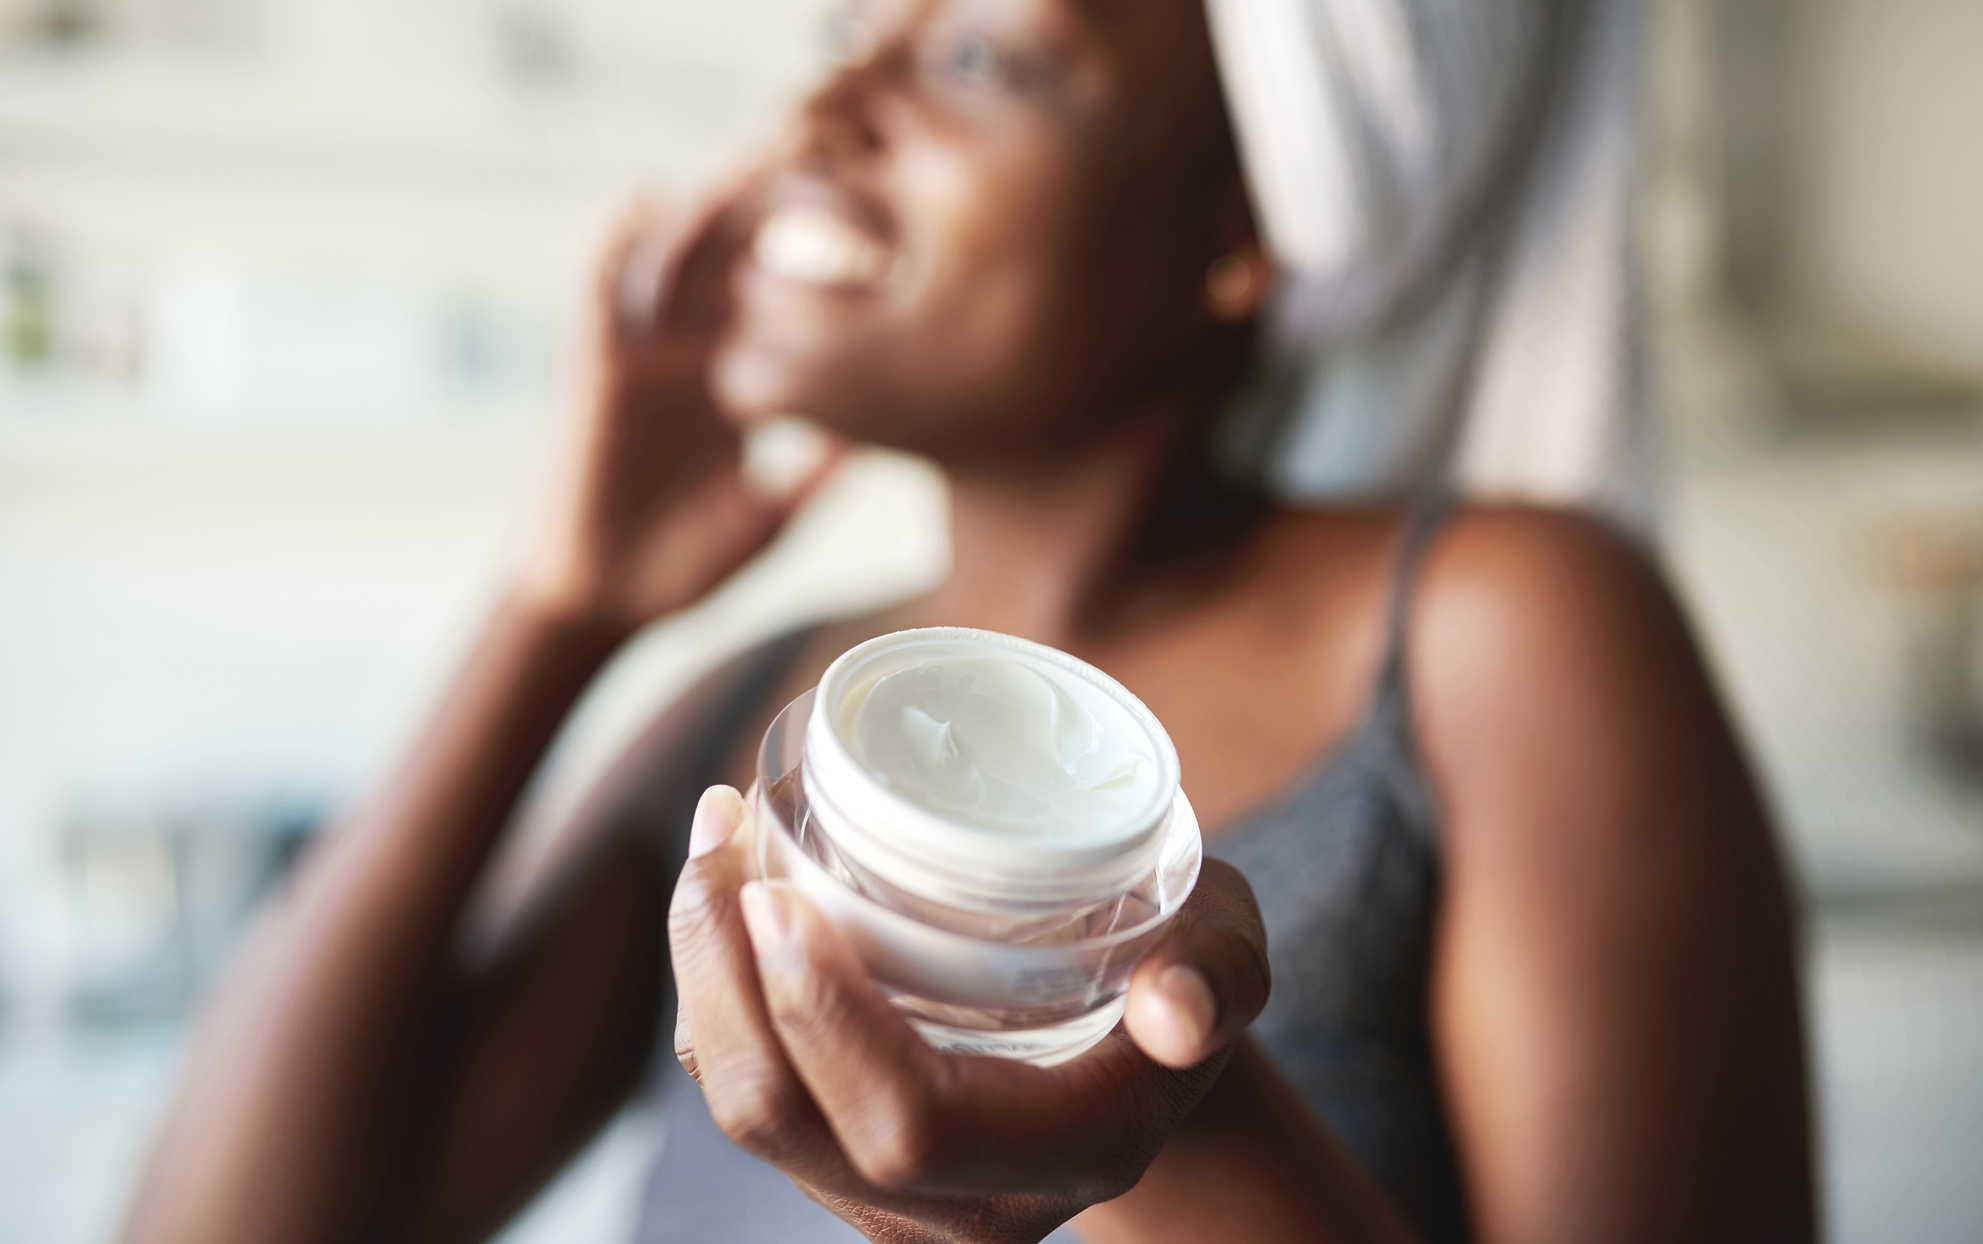 African American woman holding a jar of moisturizer